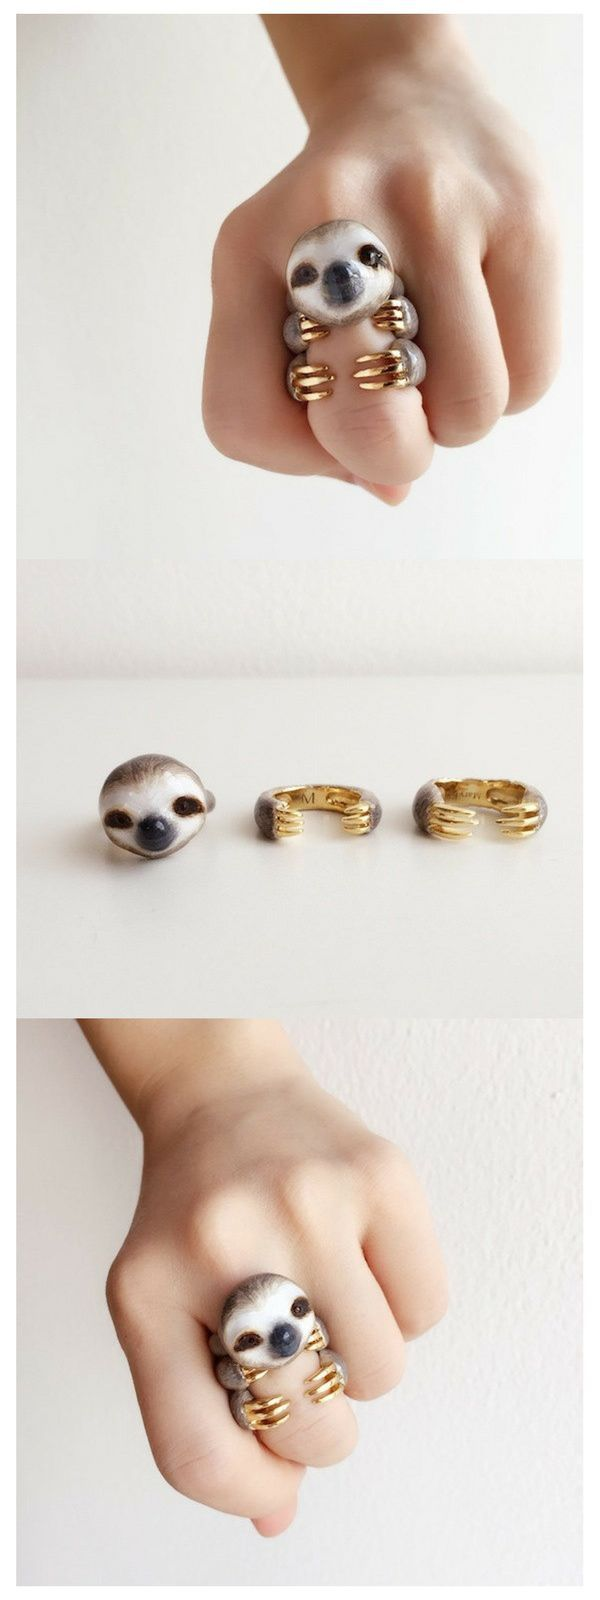 3-Teiliges Faultier Ringset / 3 Piece Sloth Ring S…